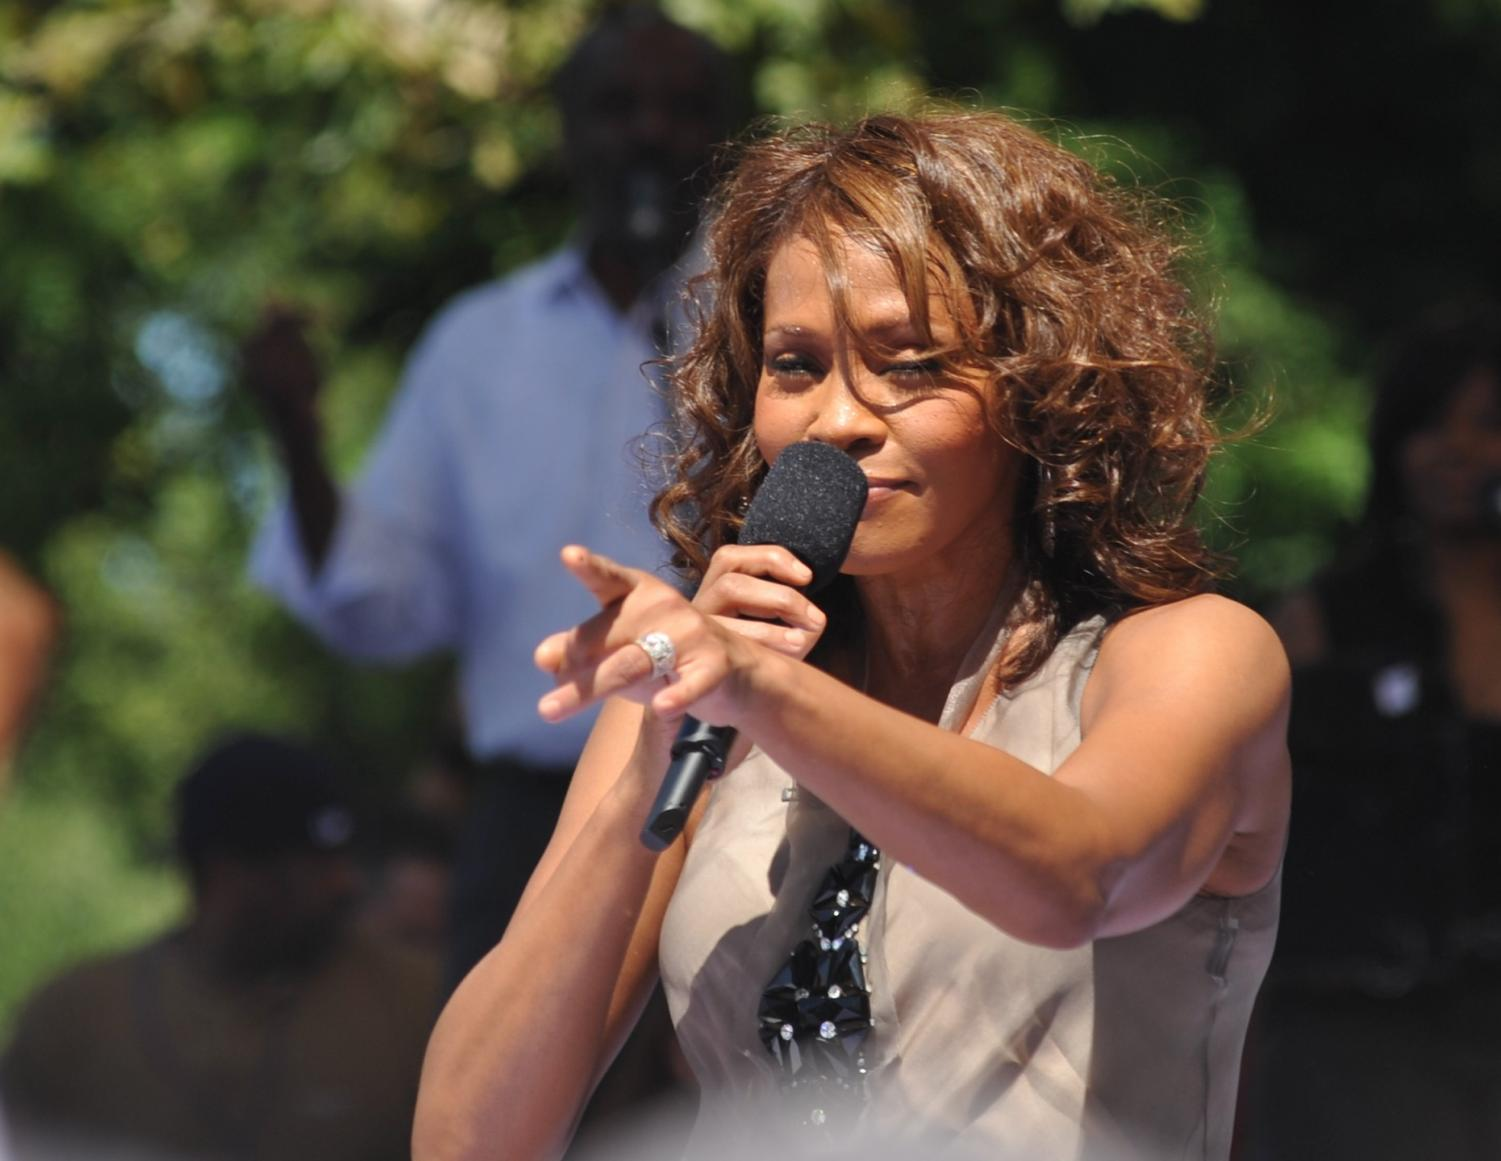 Singing at an outdoor concert, Whitney Houston performs I will always love you.